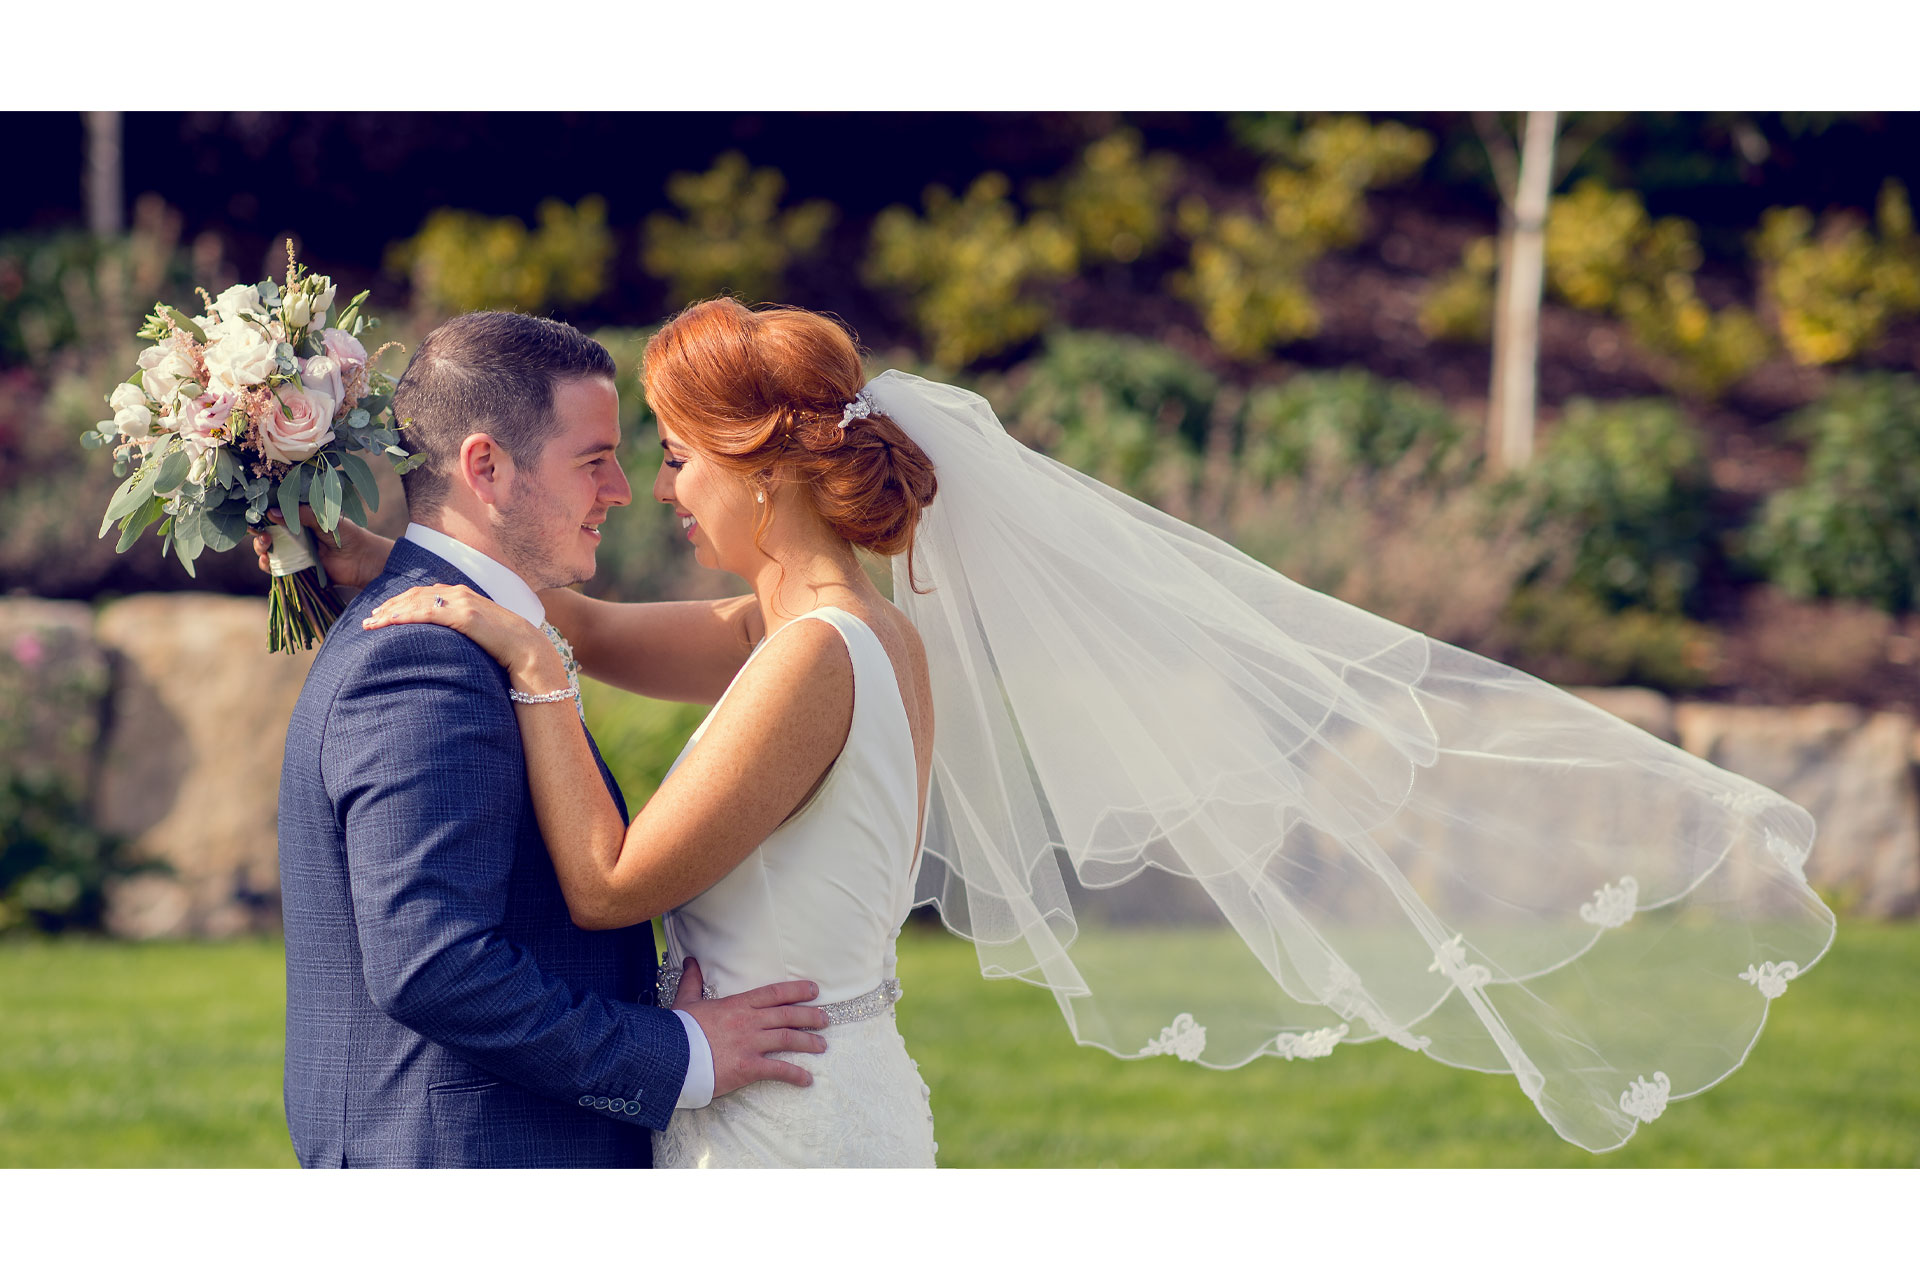 Photo of Becky and Ryan on their wedding day at Hotel Kilmore, Co. Cavan, Ireland.